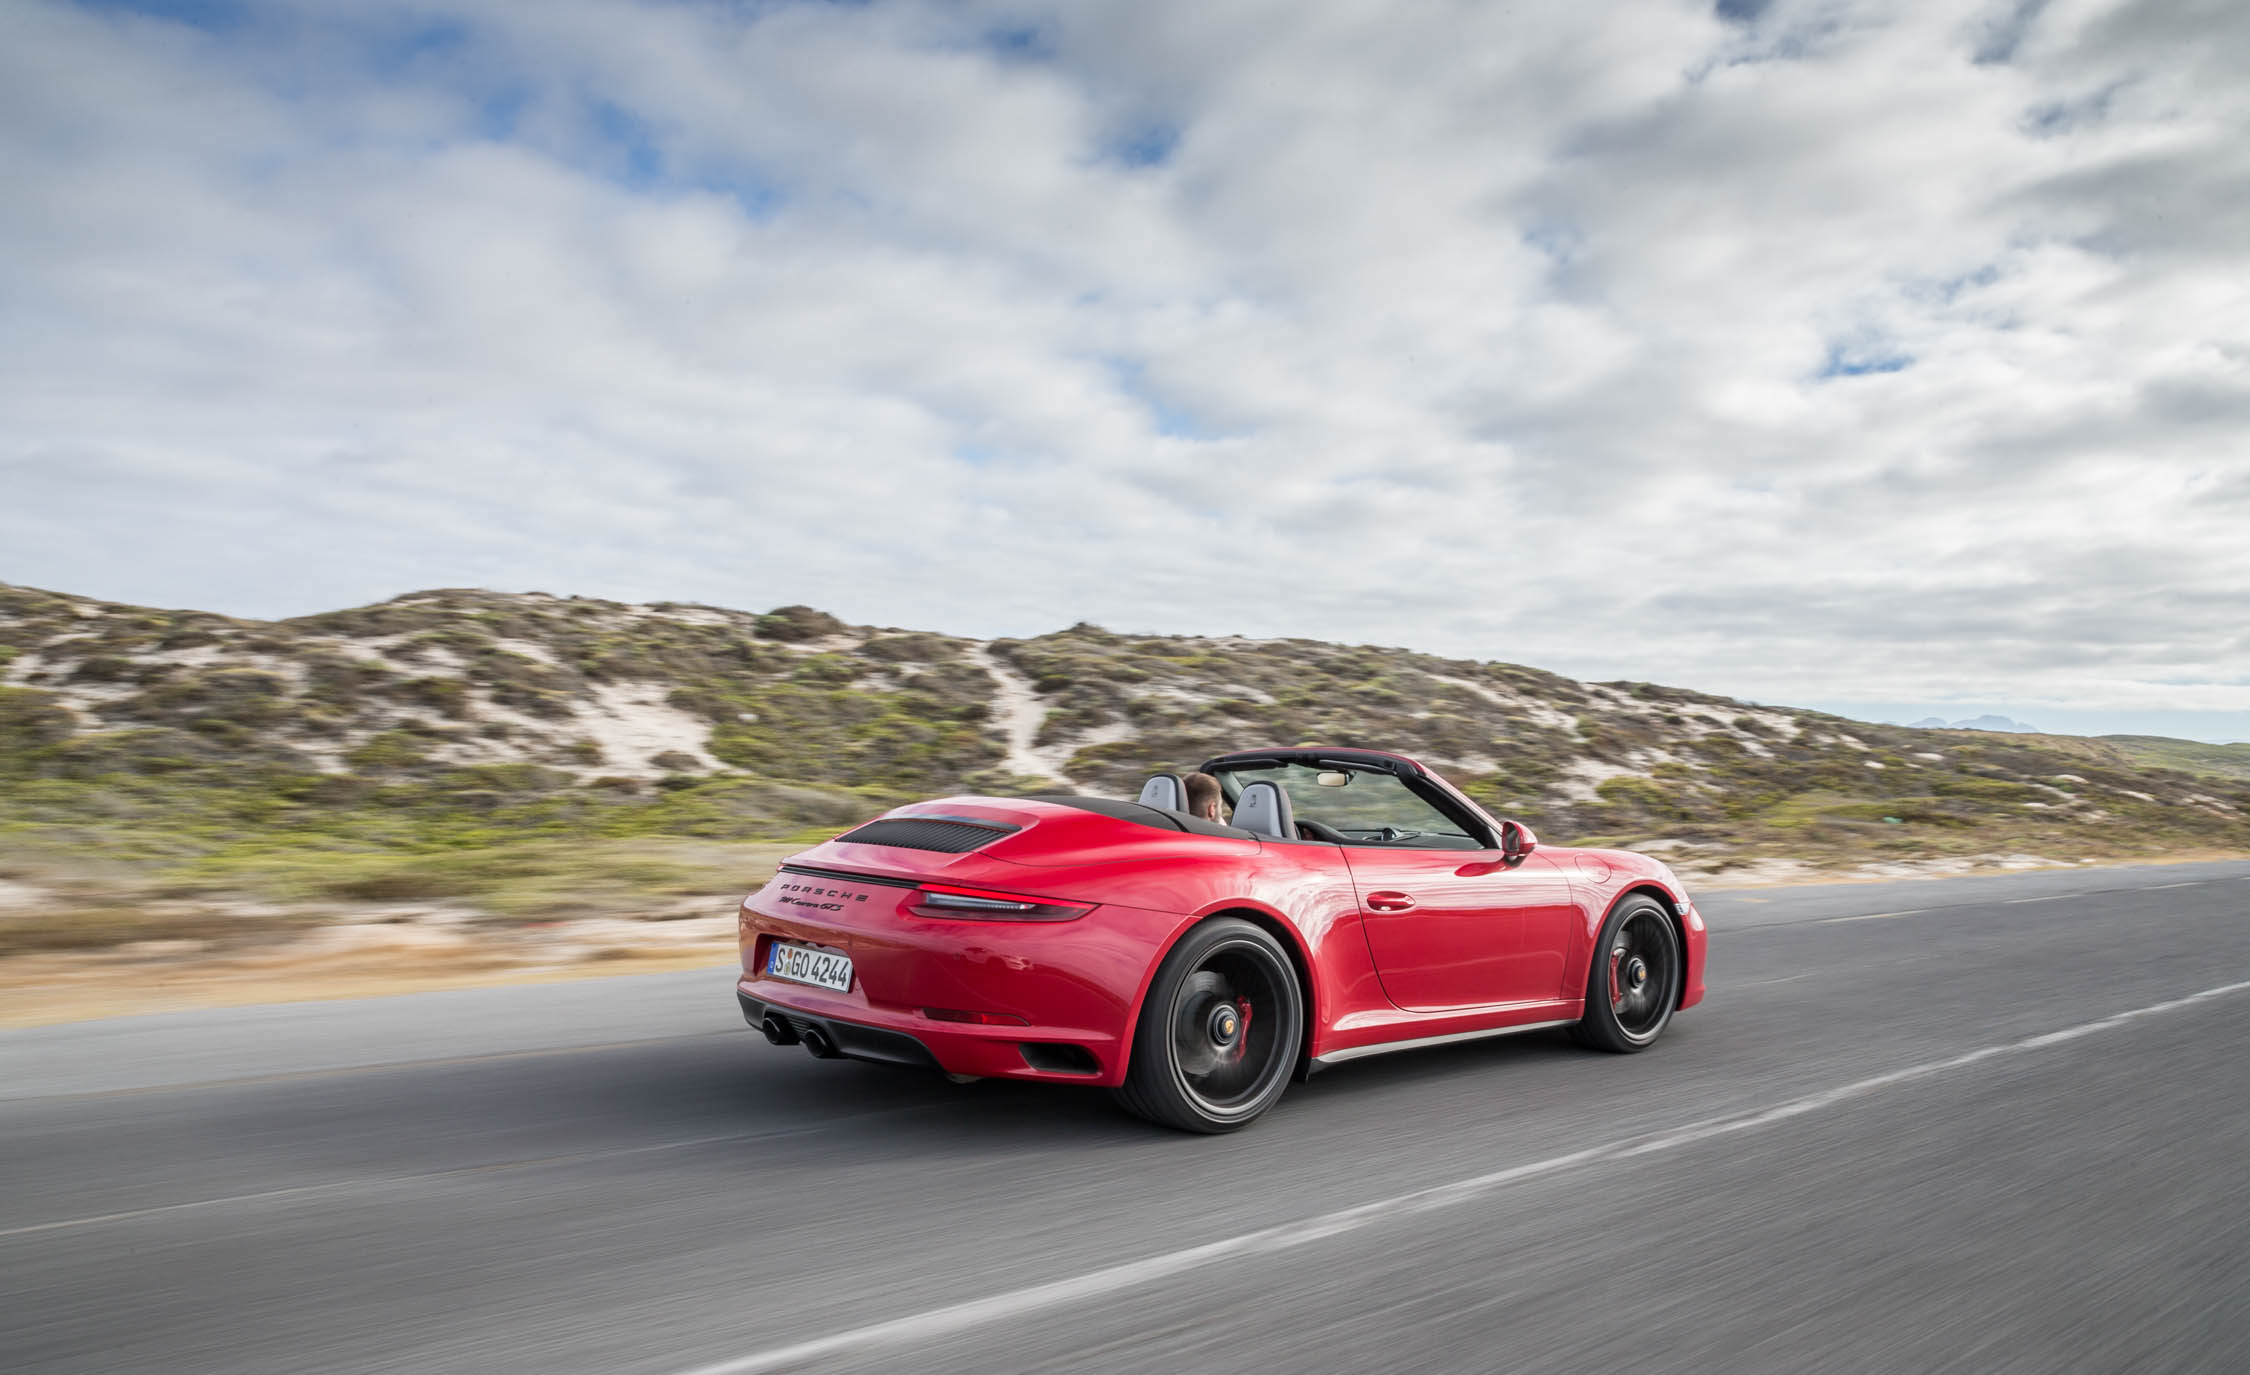 2017 Porsche 911 Carrera GTS Cabriolet Test Drive Side And Rear View (Photo 40 of 97)